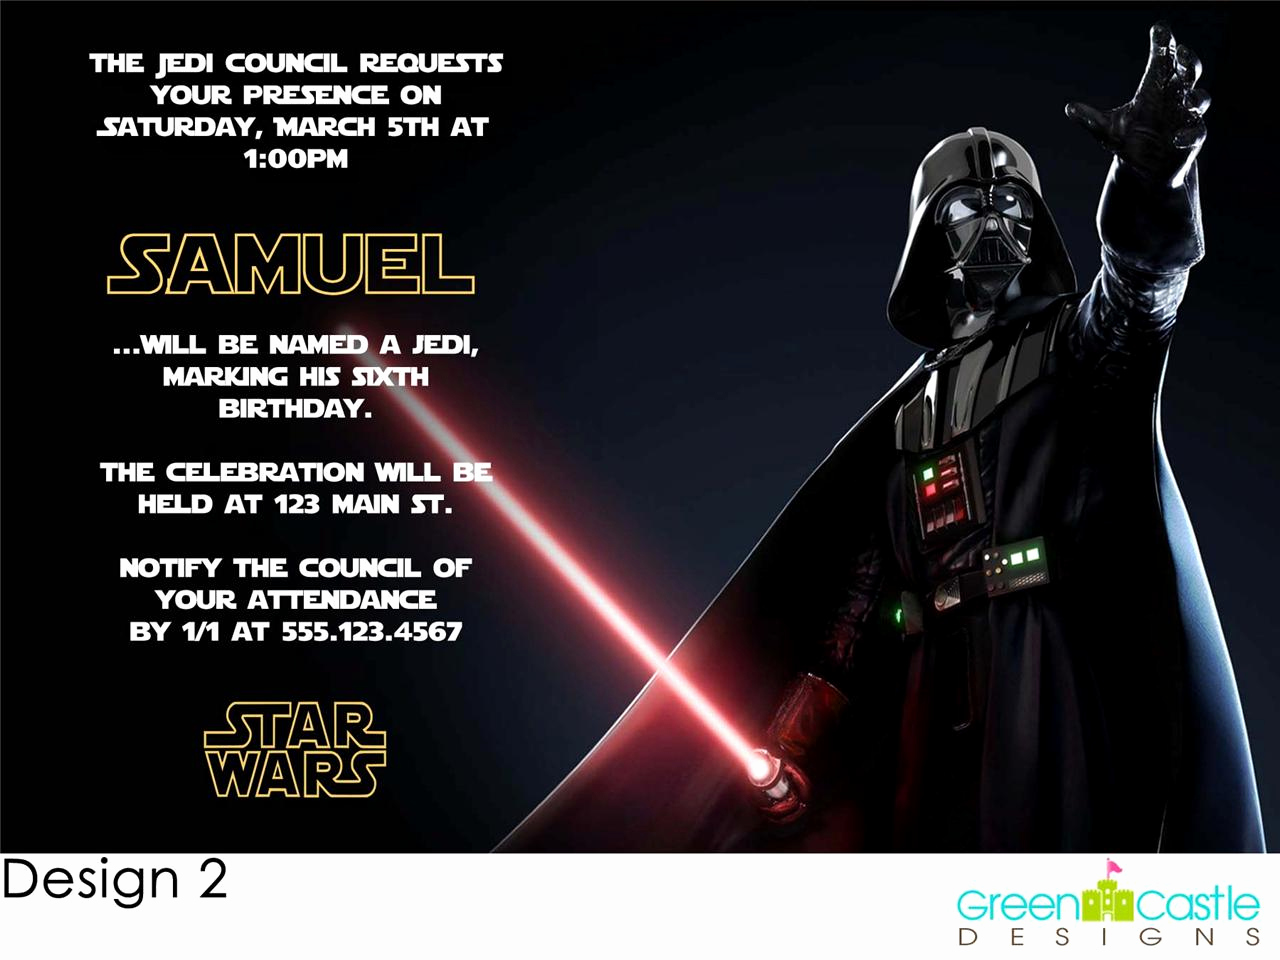 Star Wars Invitation Template Fresh Star Wars Birthday Party Invitations Templates